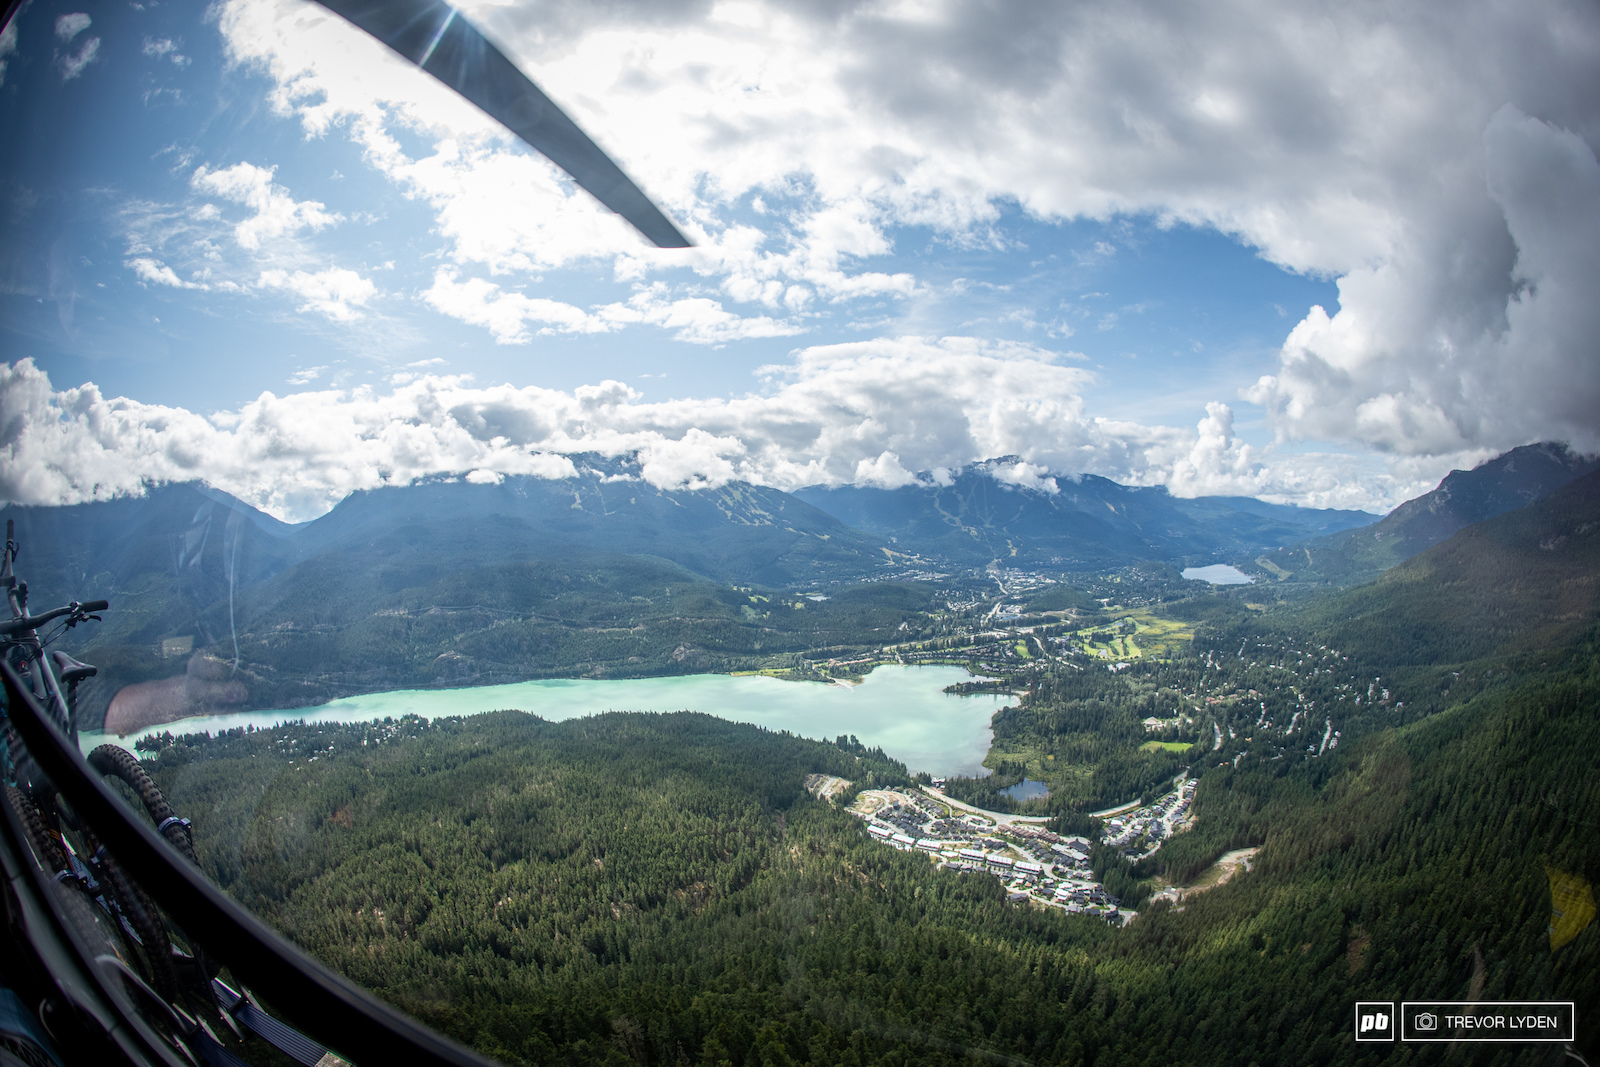 Midday over Whistler Valley.